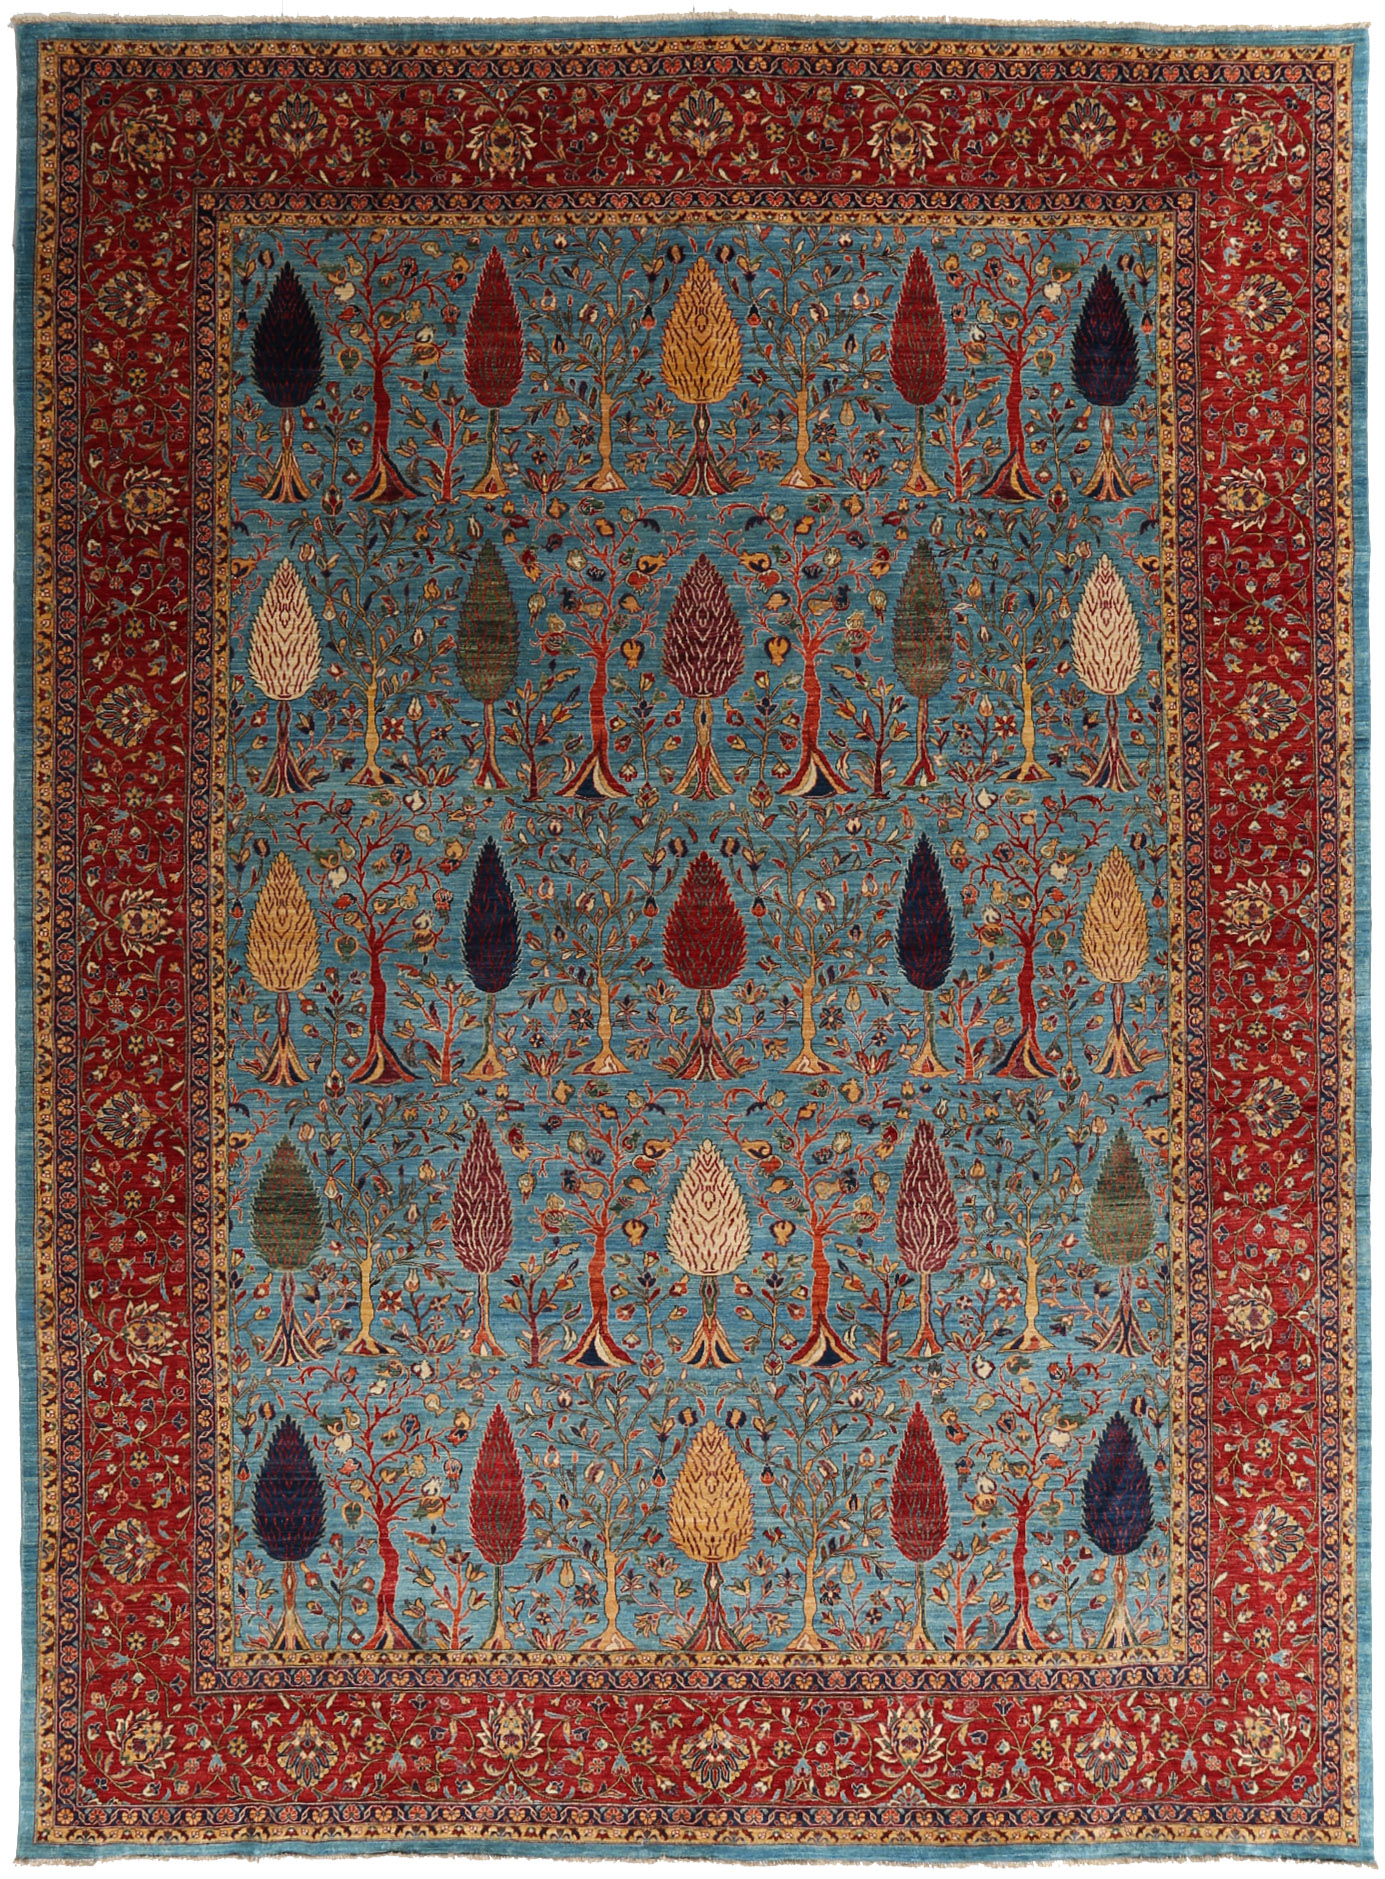 An example of a traditionally styled so-called Persian carpet from the selection of Cyrus Artisan Rugs. No matter the style of carpet one might imagine, an Interior Designer can help discern your true needs and wants allowing for optimal end results. | Image courtesy of Cyrus Artisan Rugs.